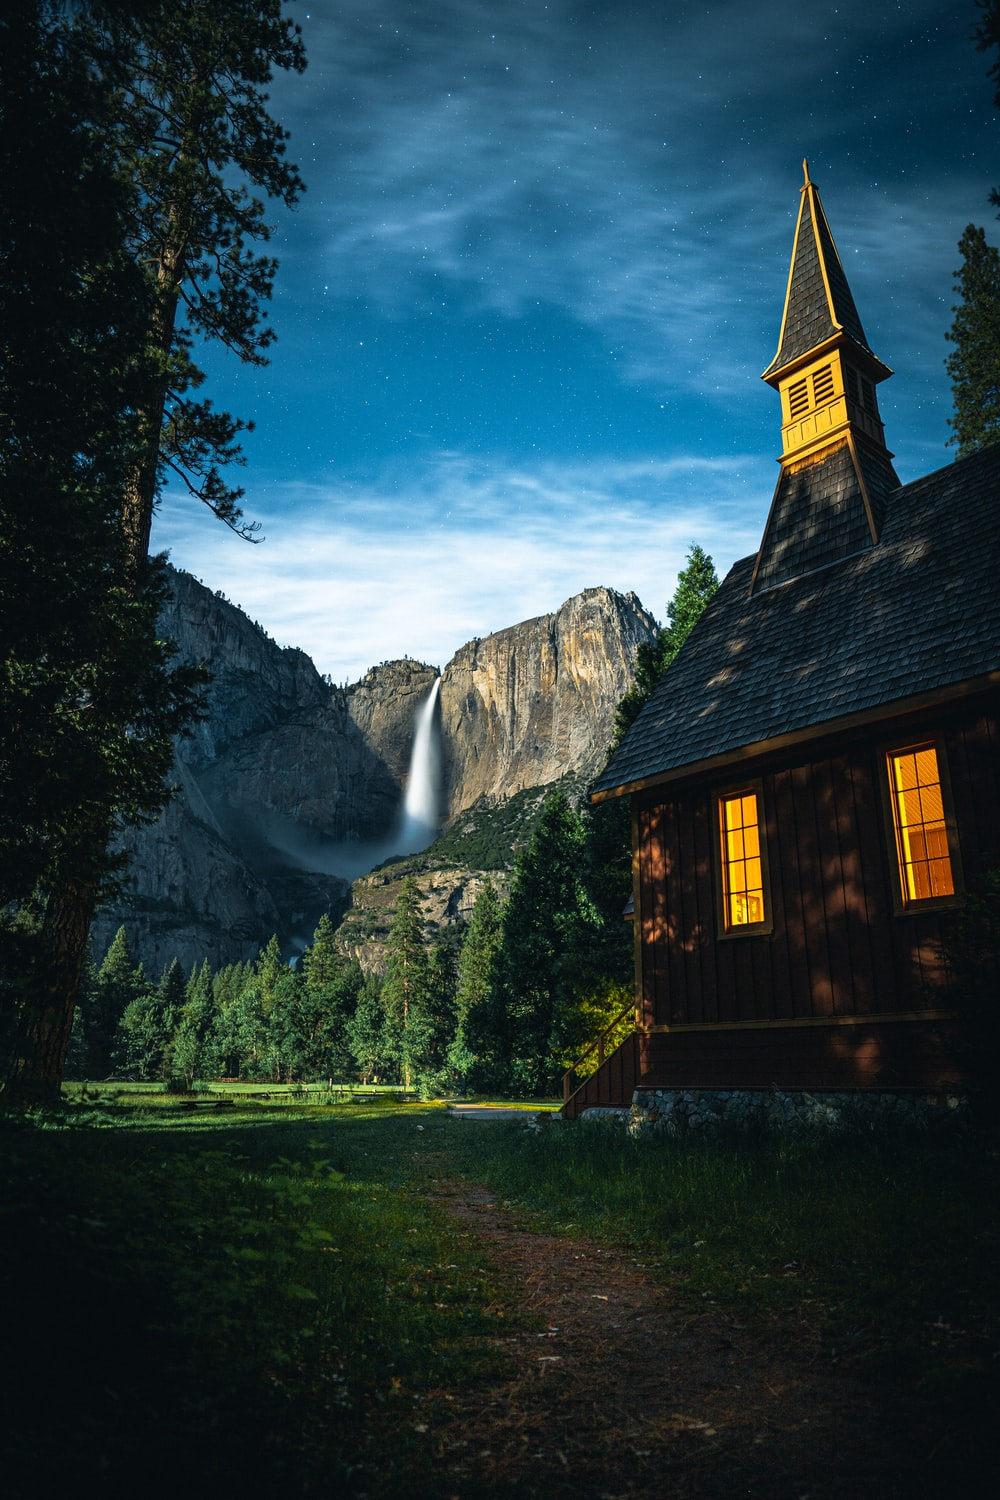 church near trees and waterfalls during day